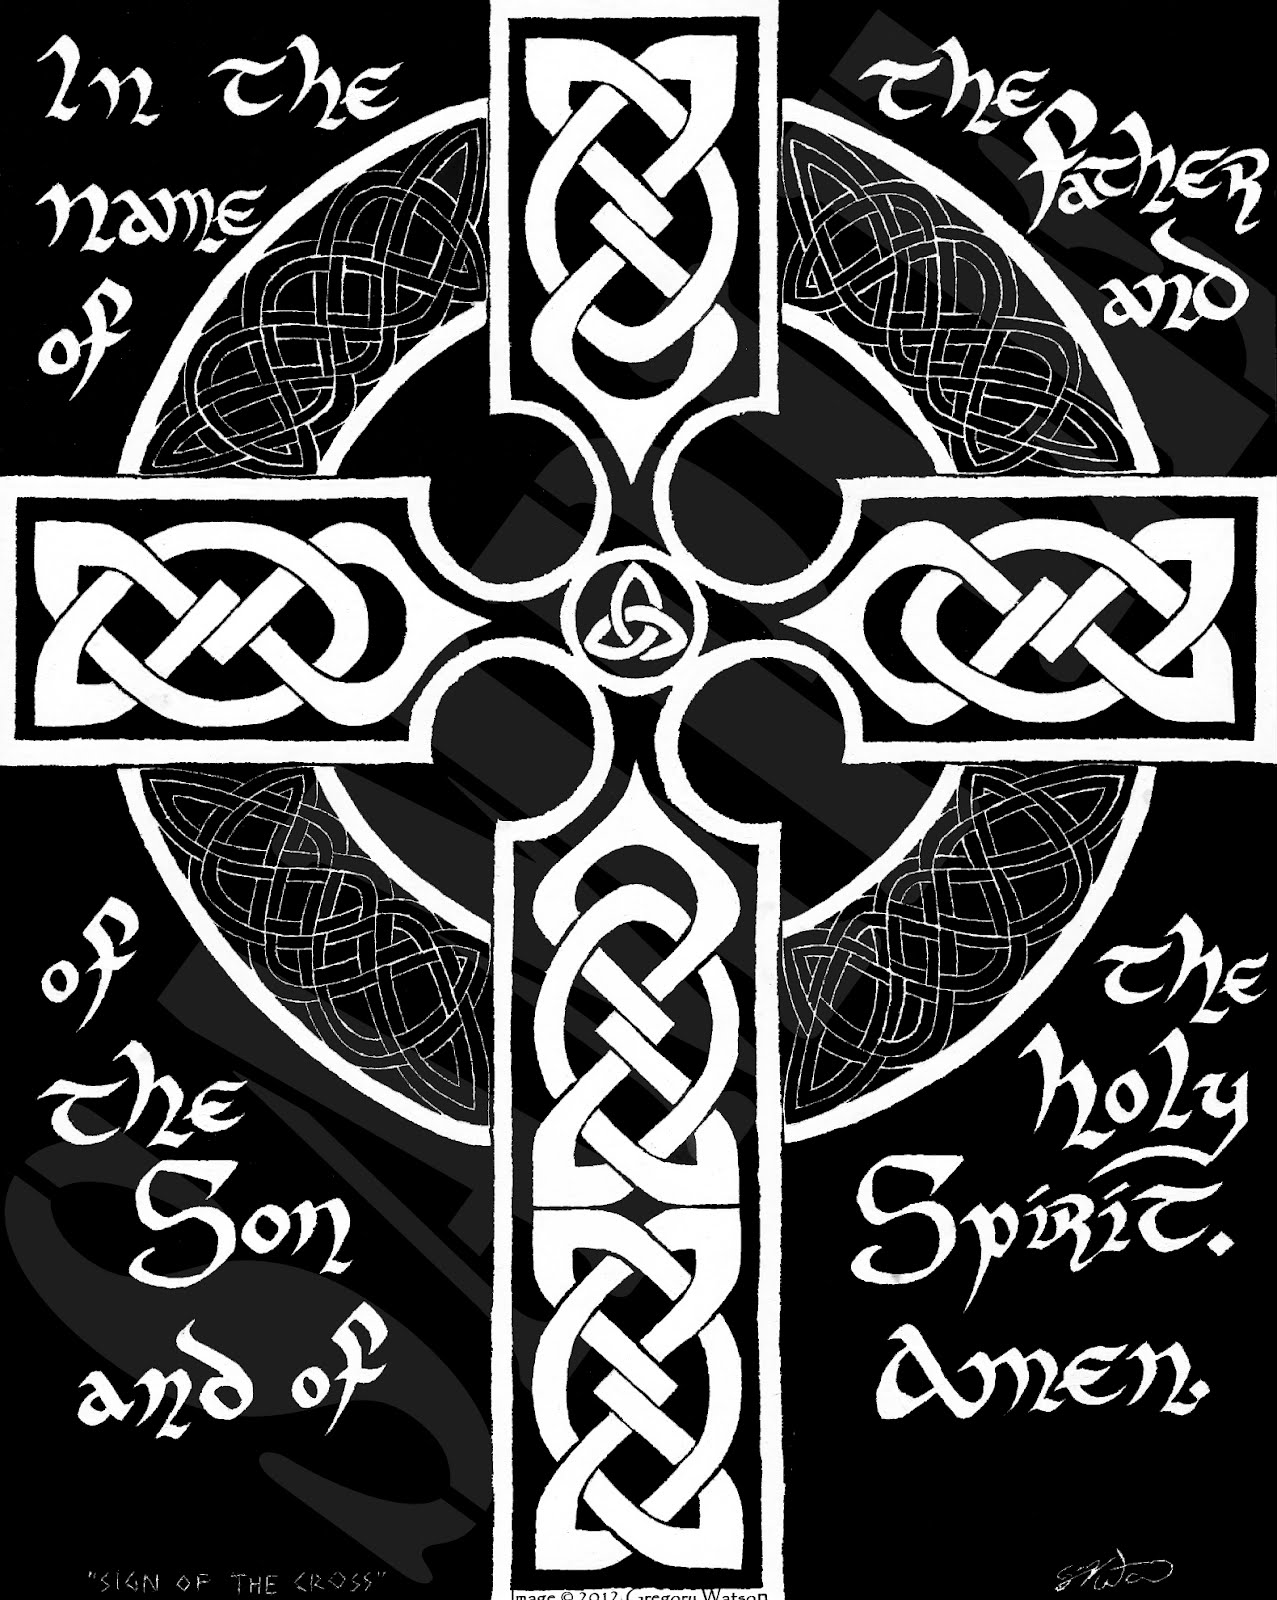 Why Should I Make The Sign Of The Cross Celtic Cross